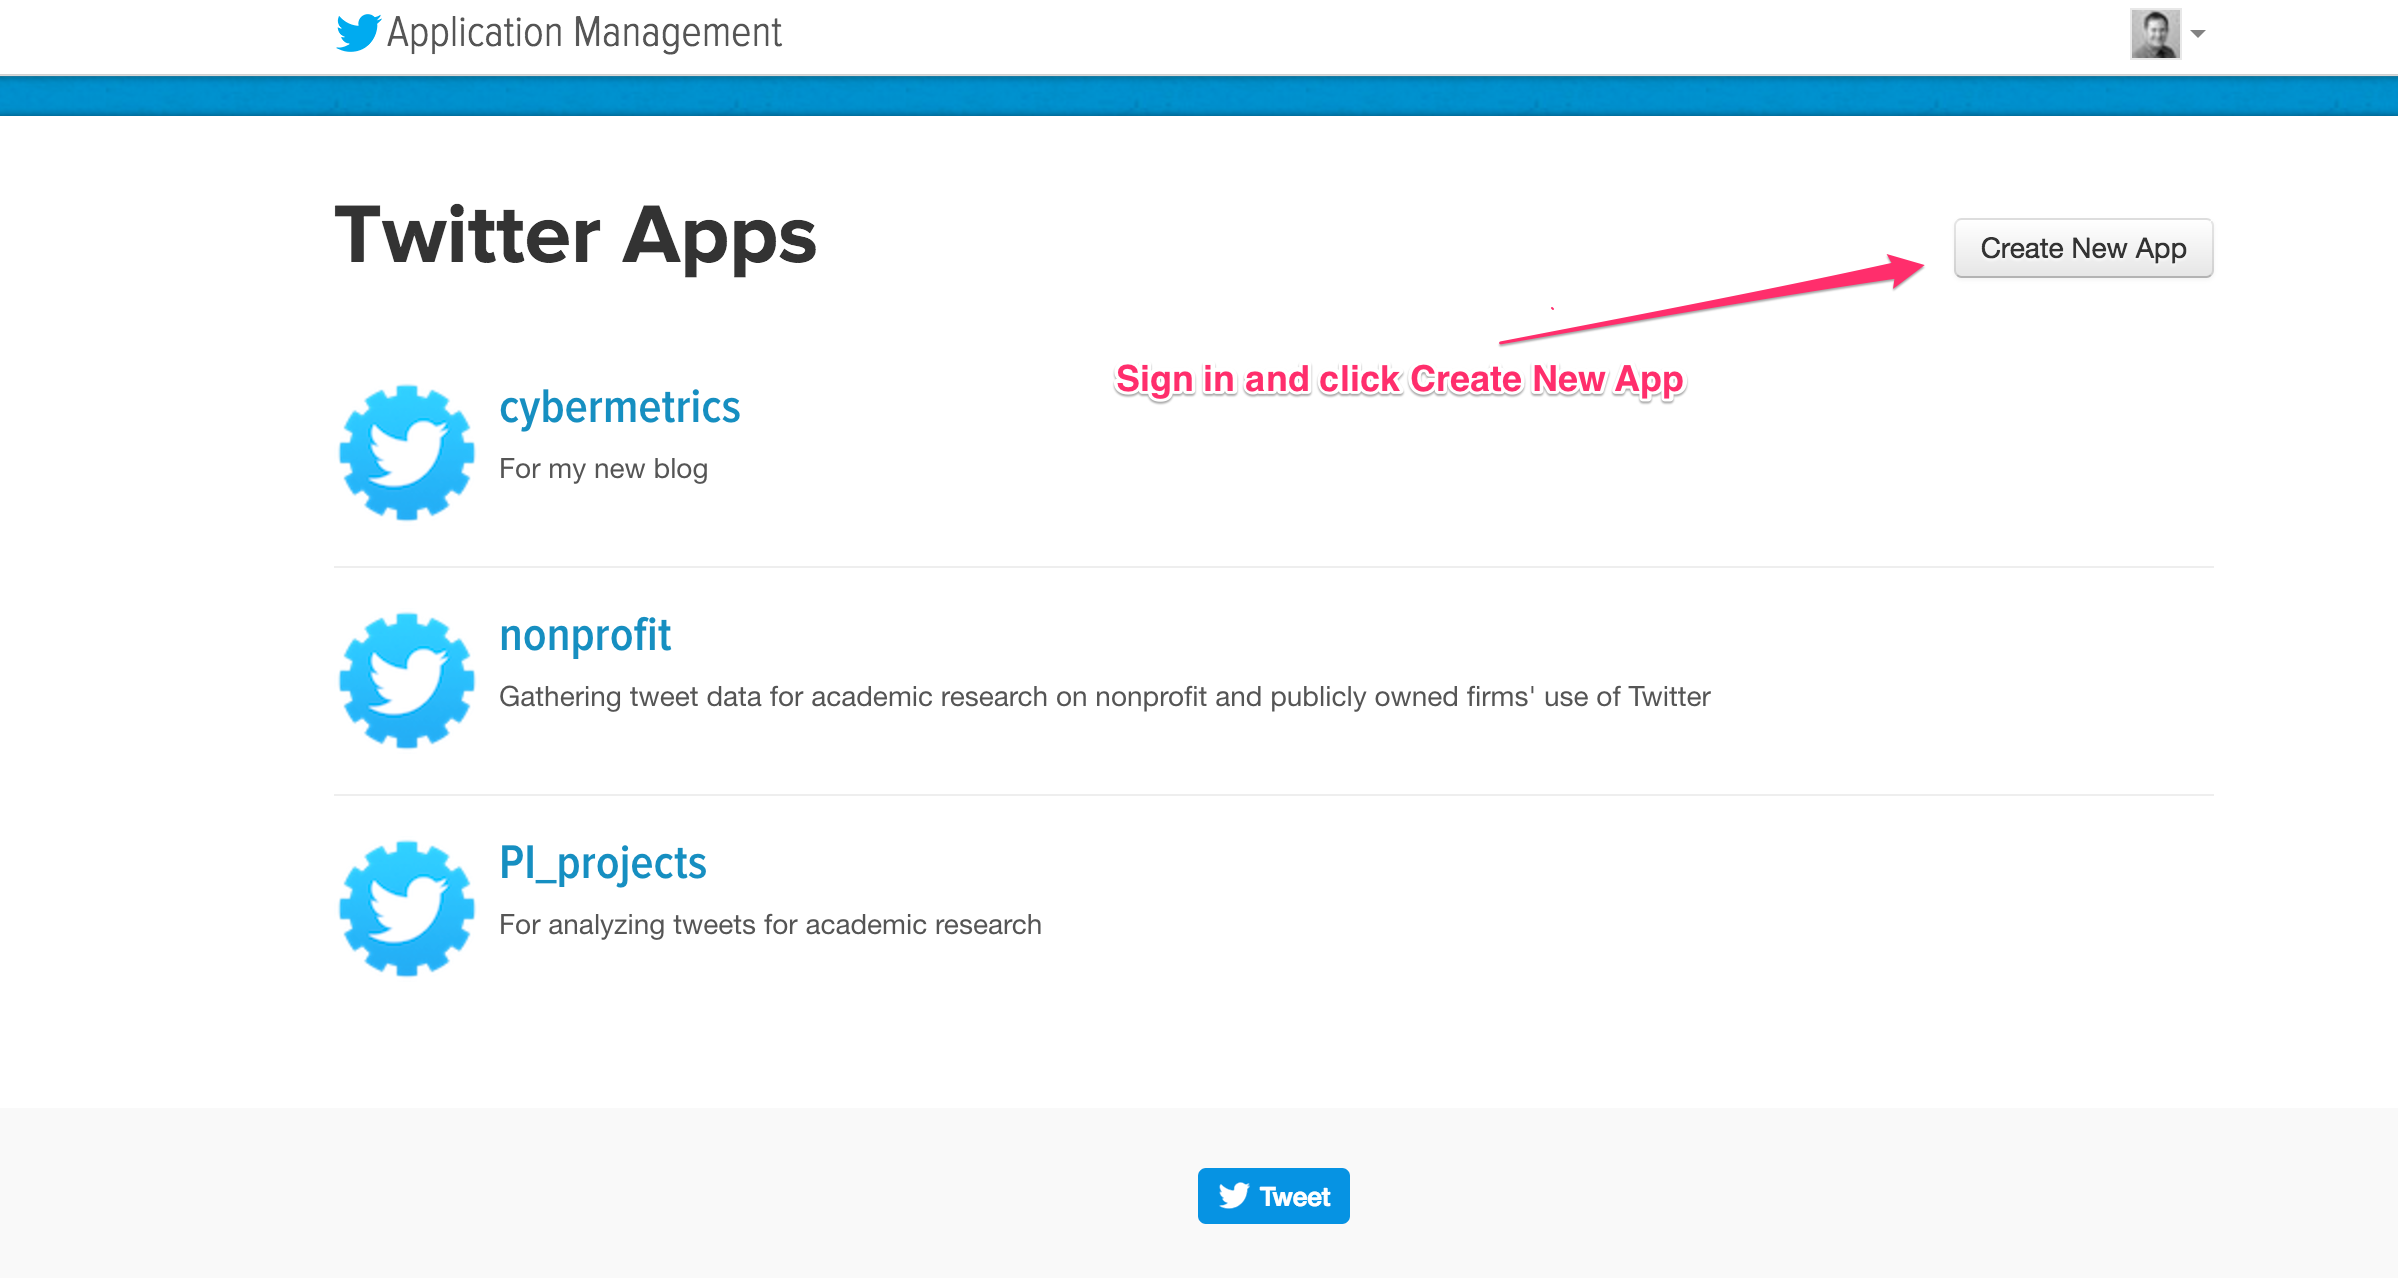 Setting up Access to the Twitter API